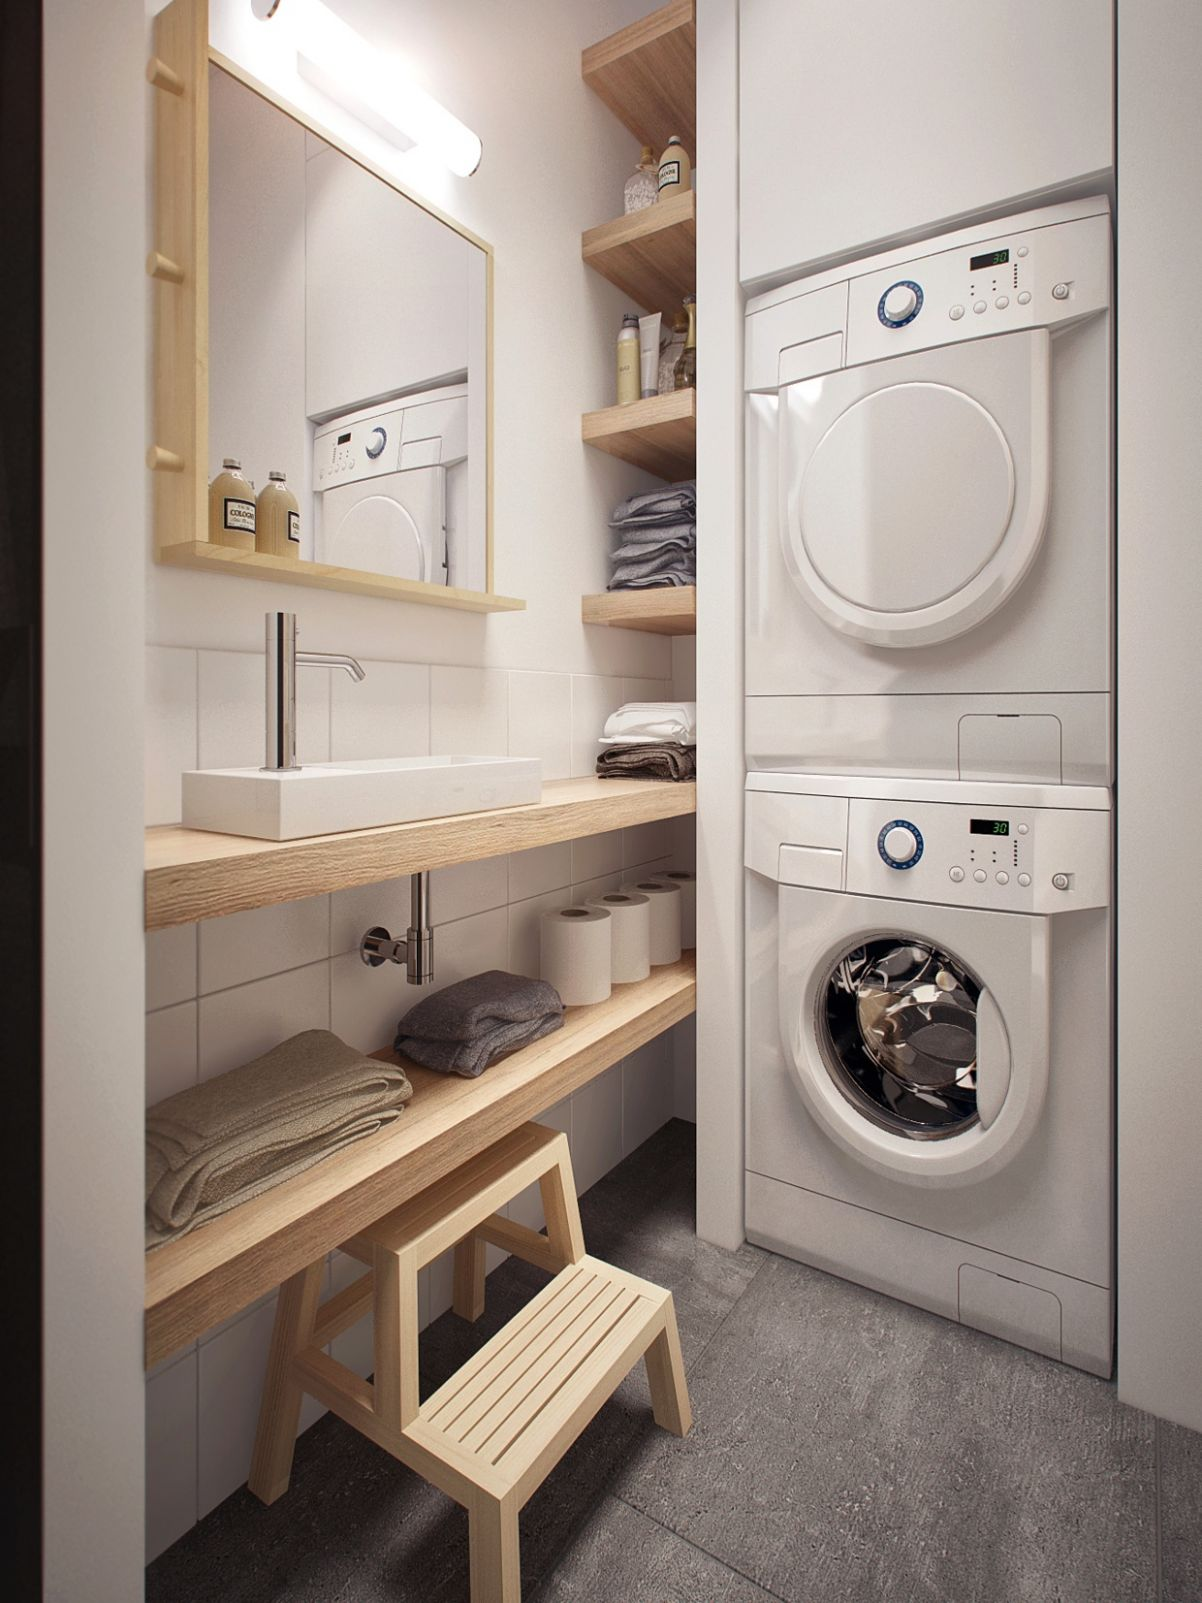 space efficient laundry room design | Interior Design Ideas.